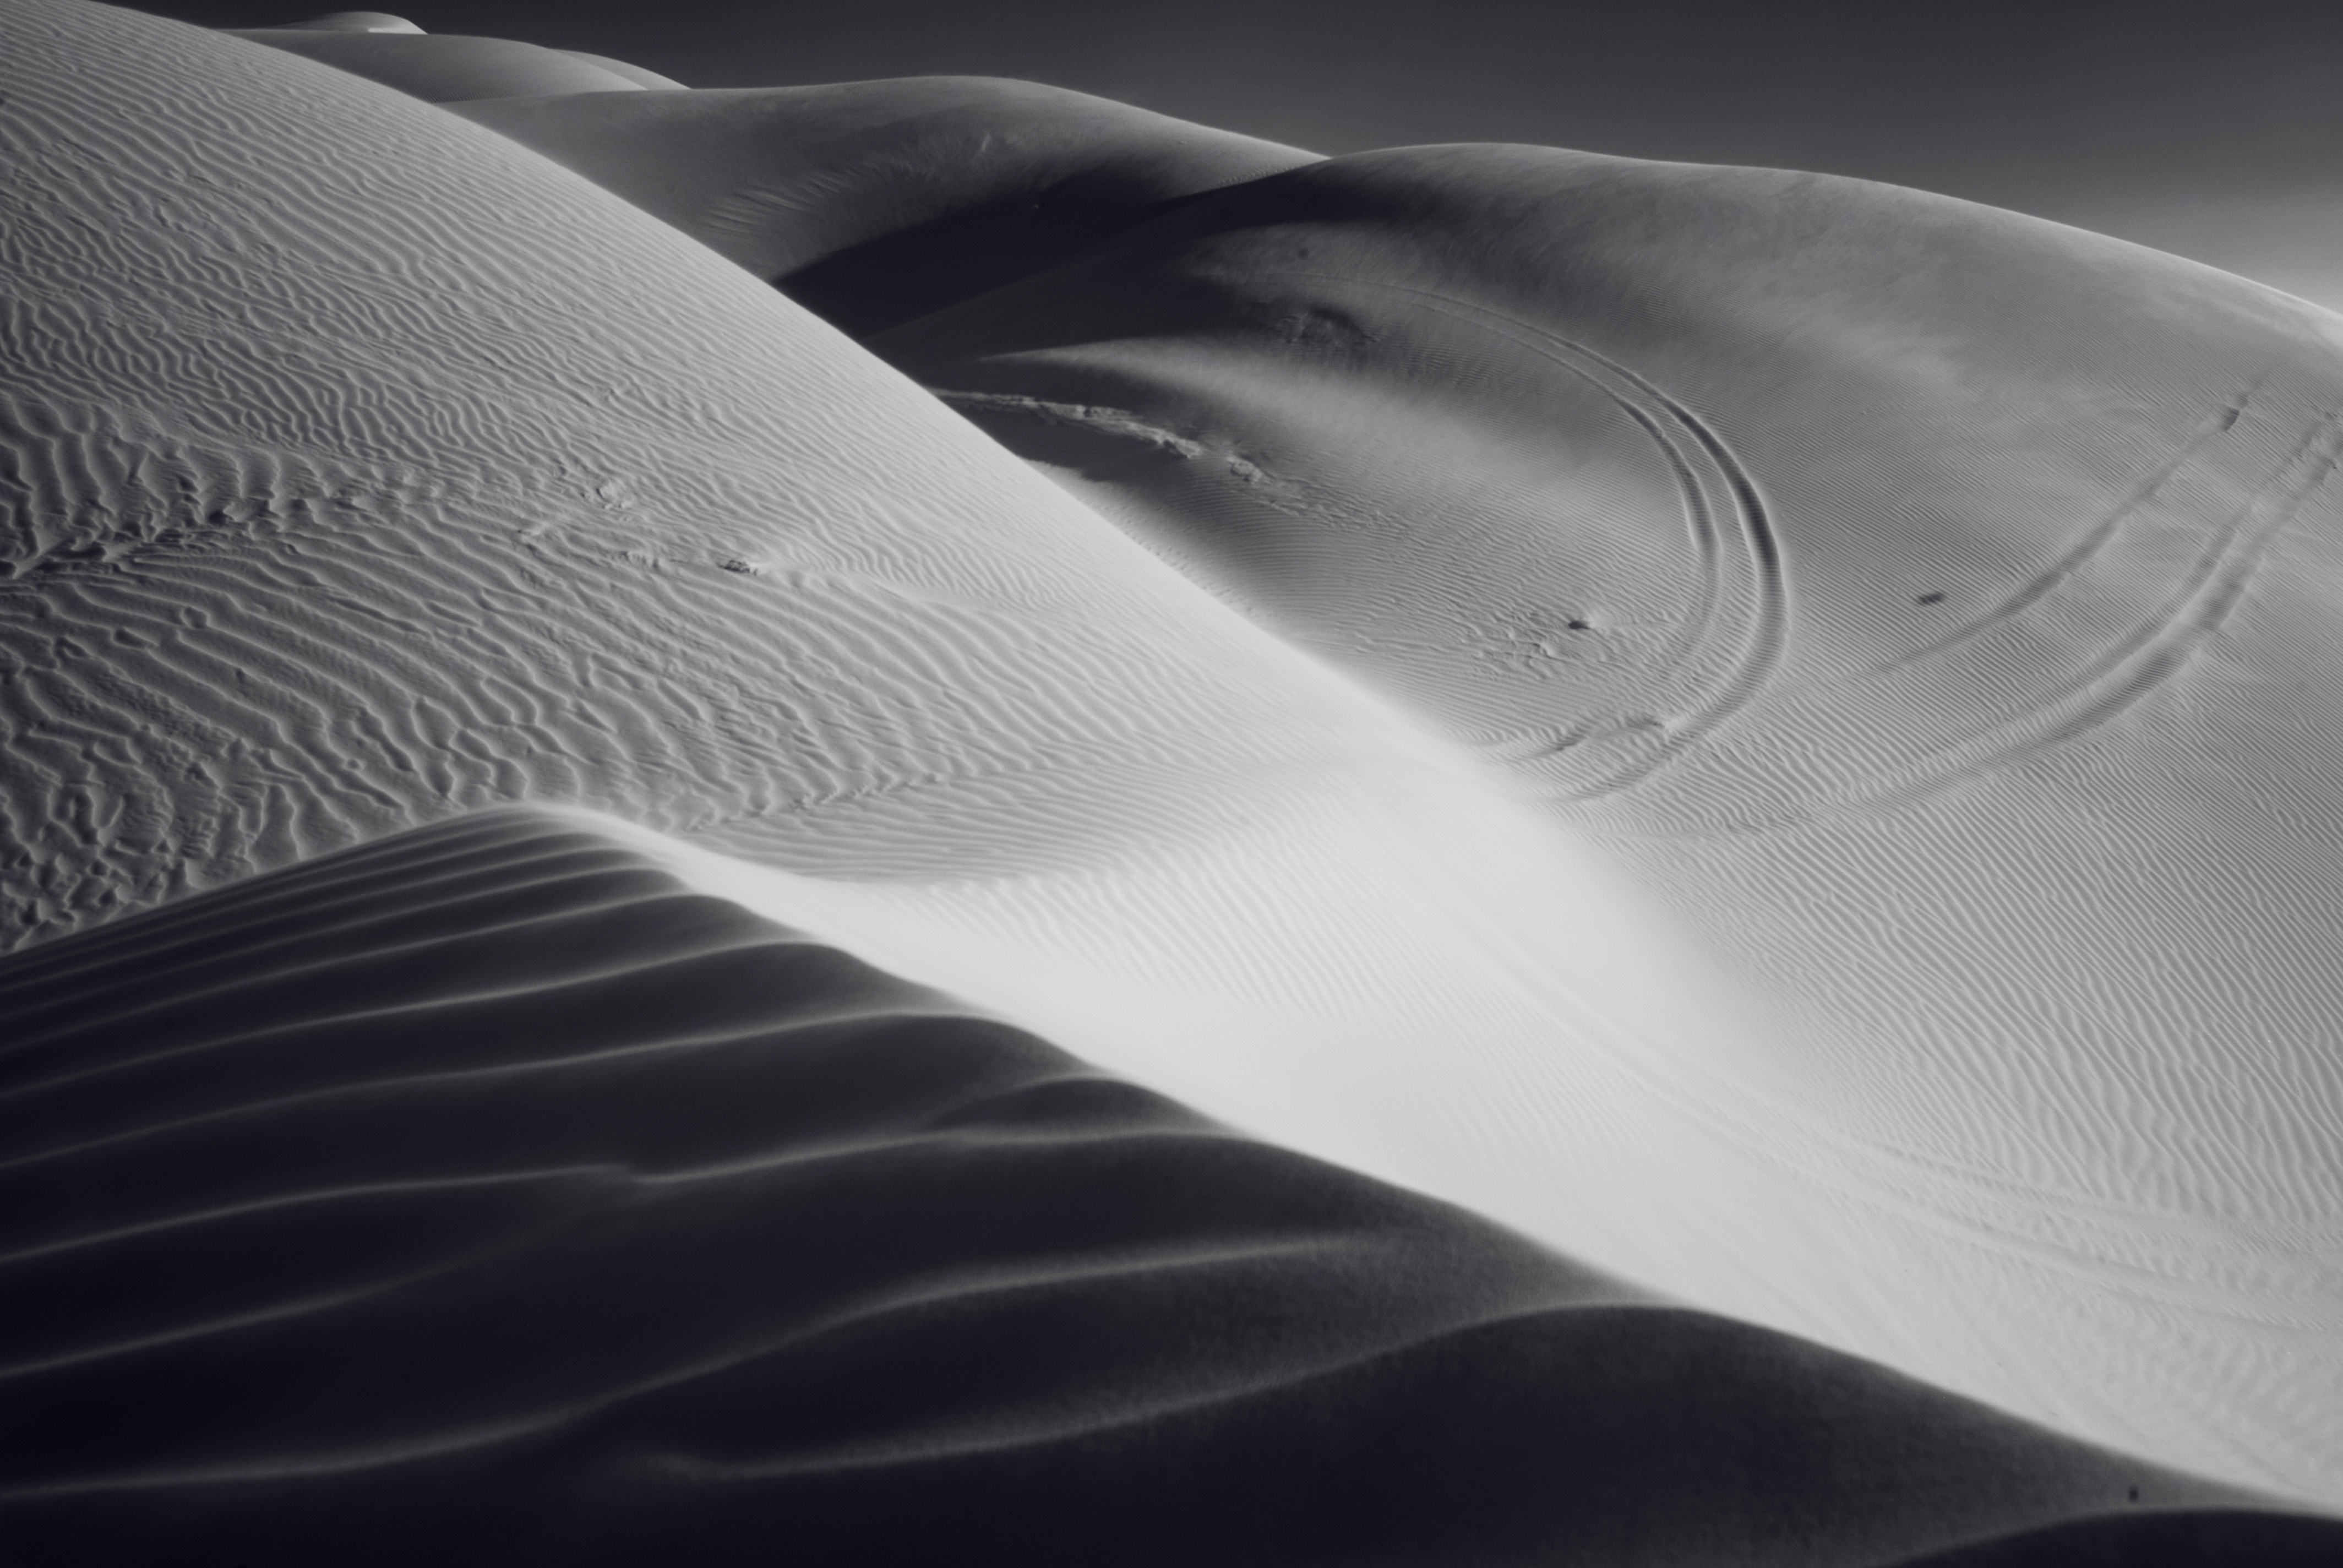 Iphone 6 Wallpaper Size Free Stock Photo Of Black And White Desert Dunes